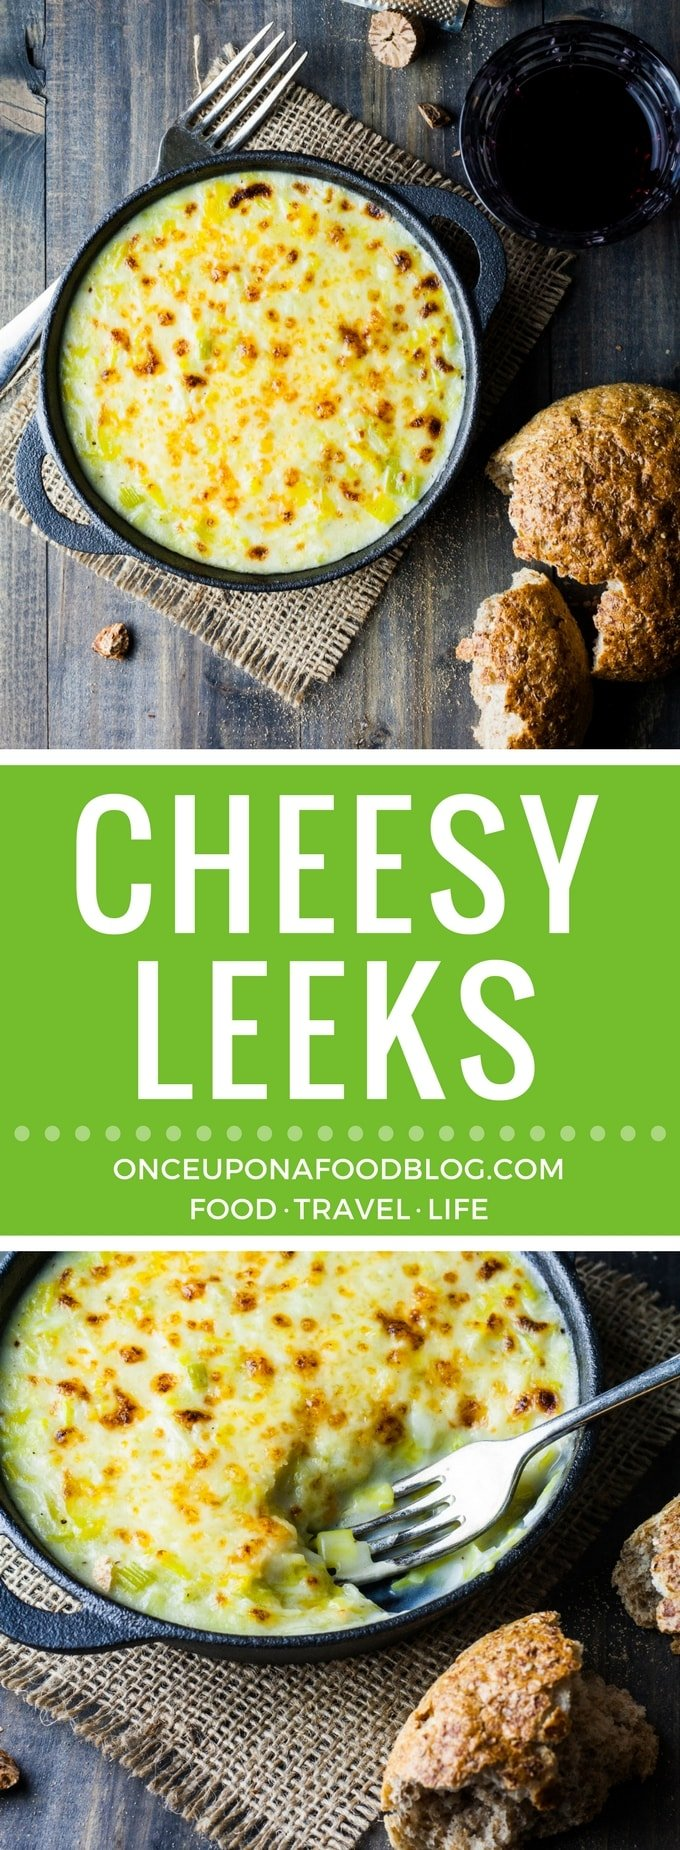 Smooth, silky leeks in a creamy, cheesy sauce. Absolutely gorgeous served with a chunk of bread or alongside your favourite roast or casserole. #leeks #cheesyleeks #vegetarian #recipe #food